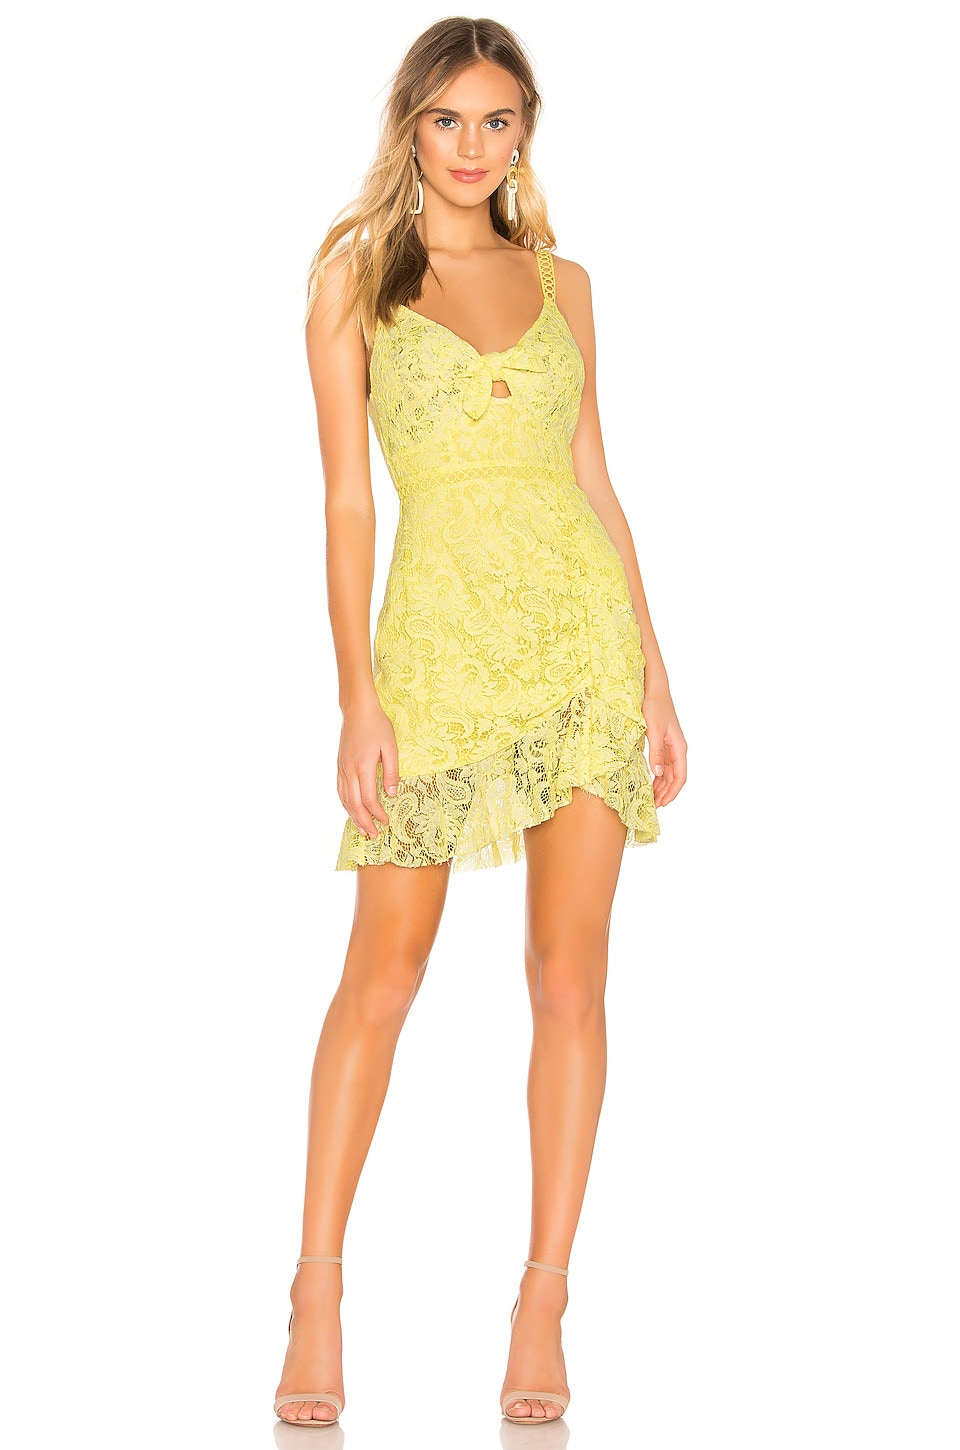 ASTR the Label Joey Dress in Lemon Drop Yellow